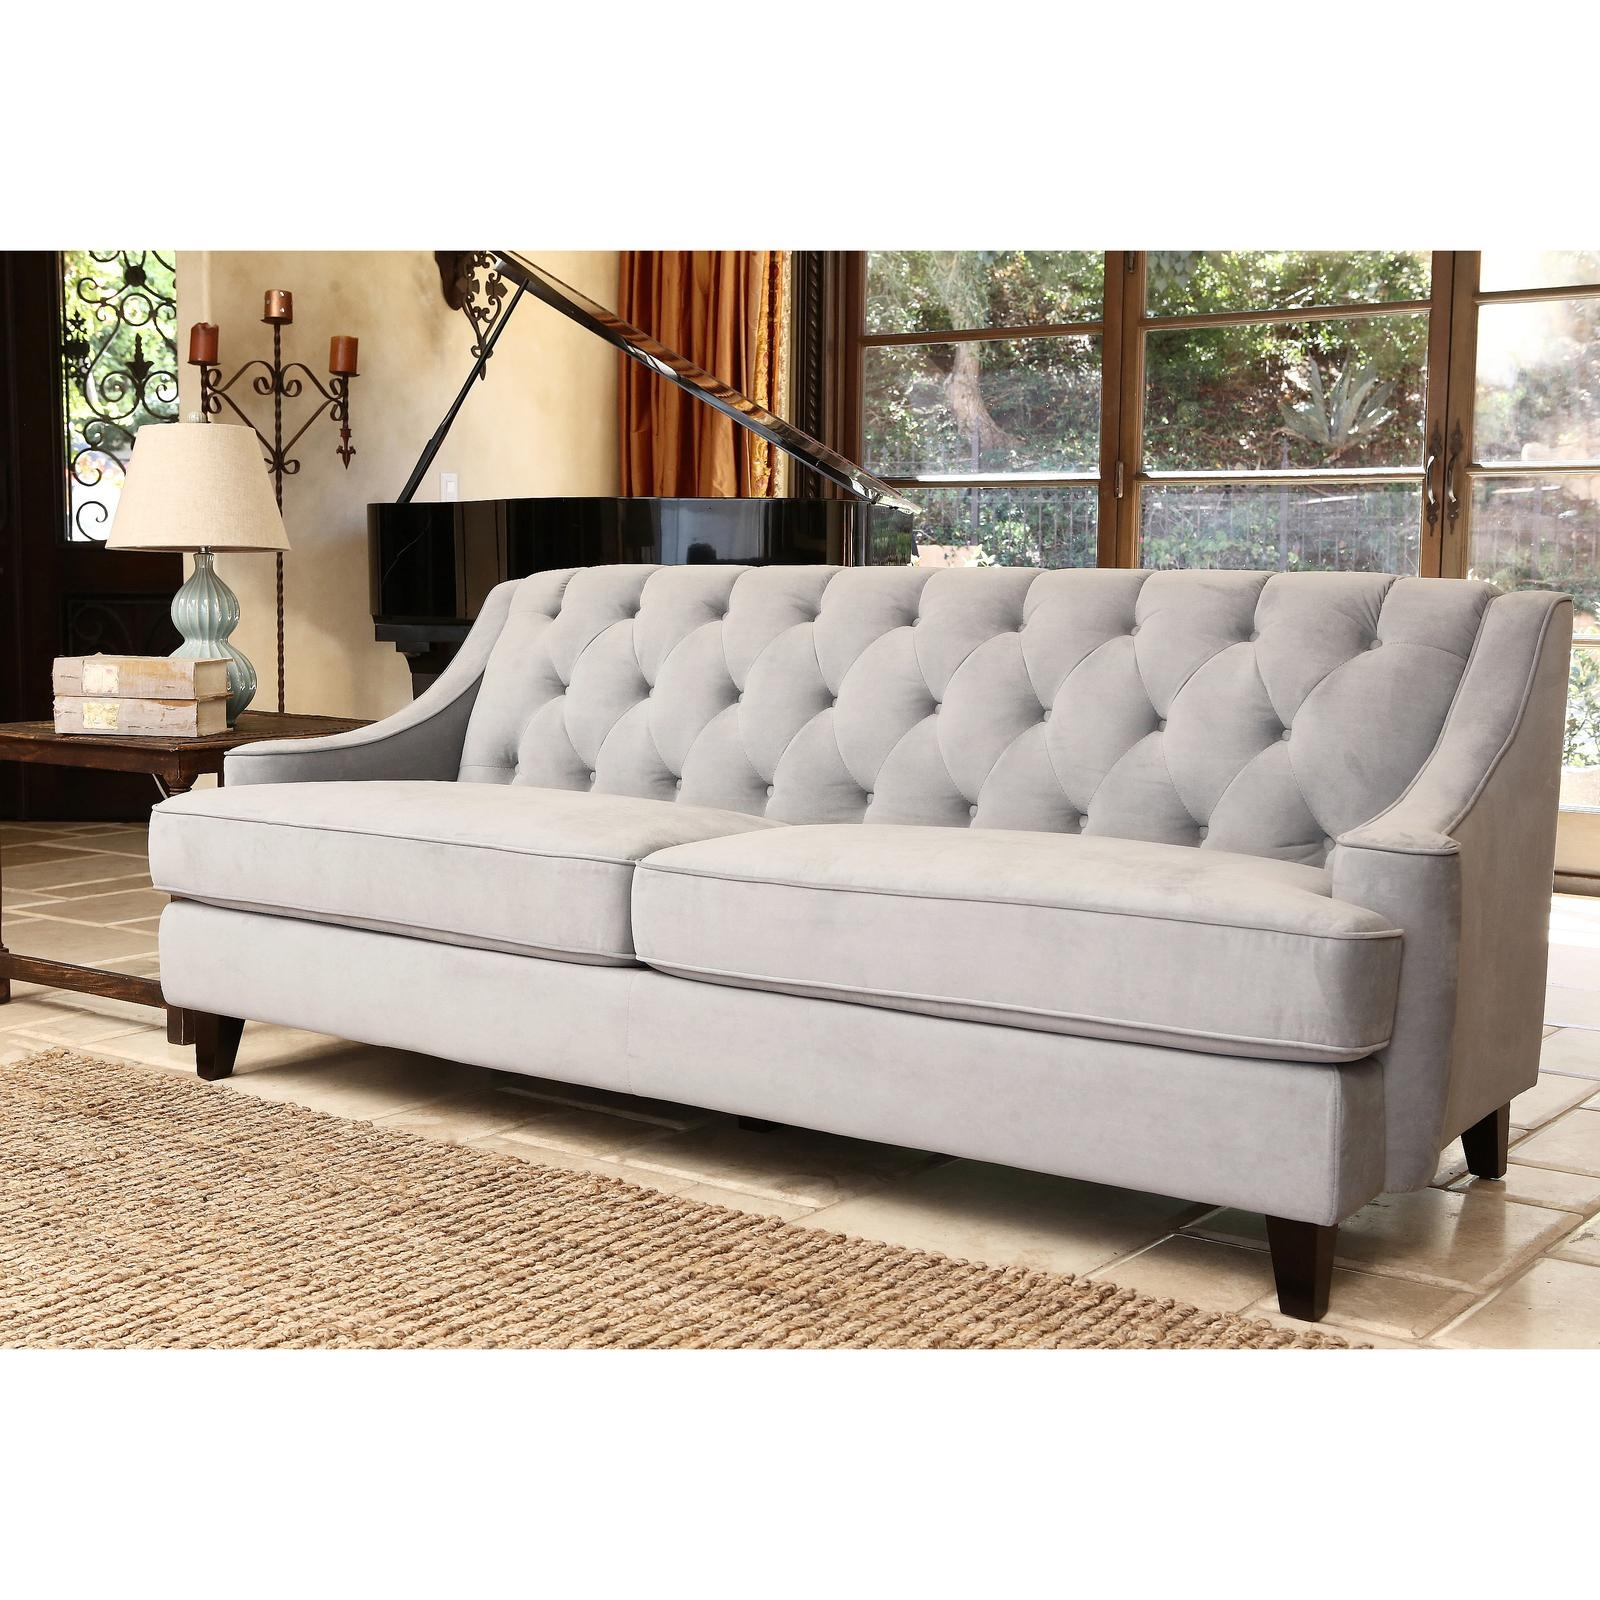 Sofas : Wonderful Modern Sectional Couches Cheap Sectionals L Pertaining To Cheap Tufted Sofas (View 19 of 23)